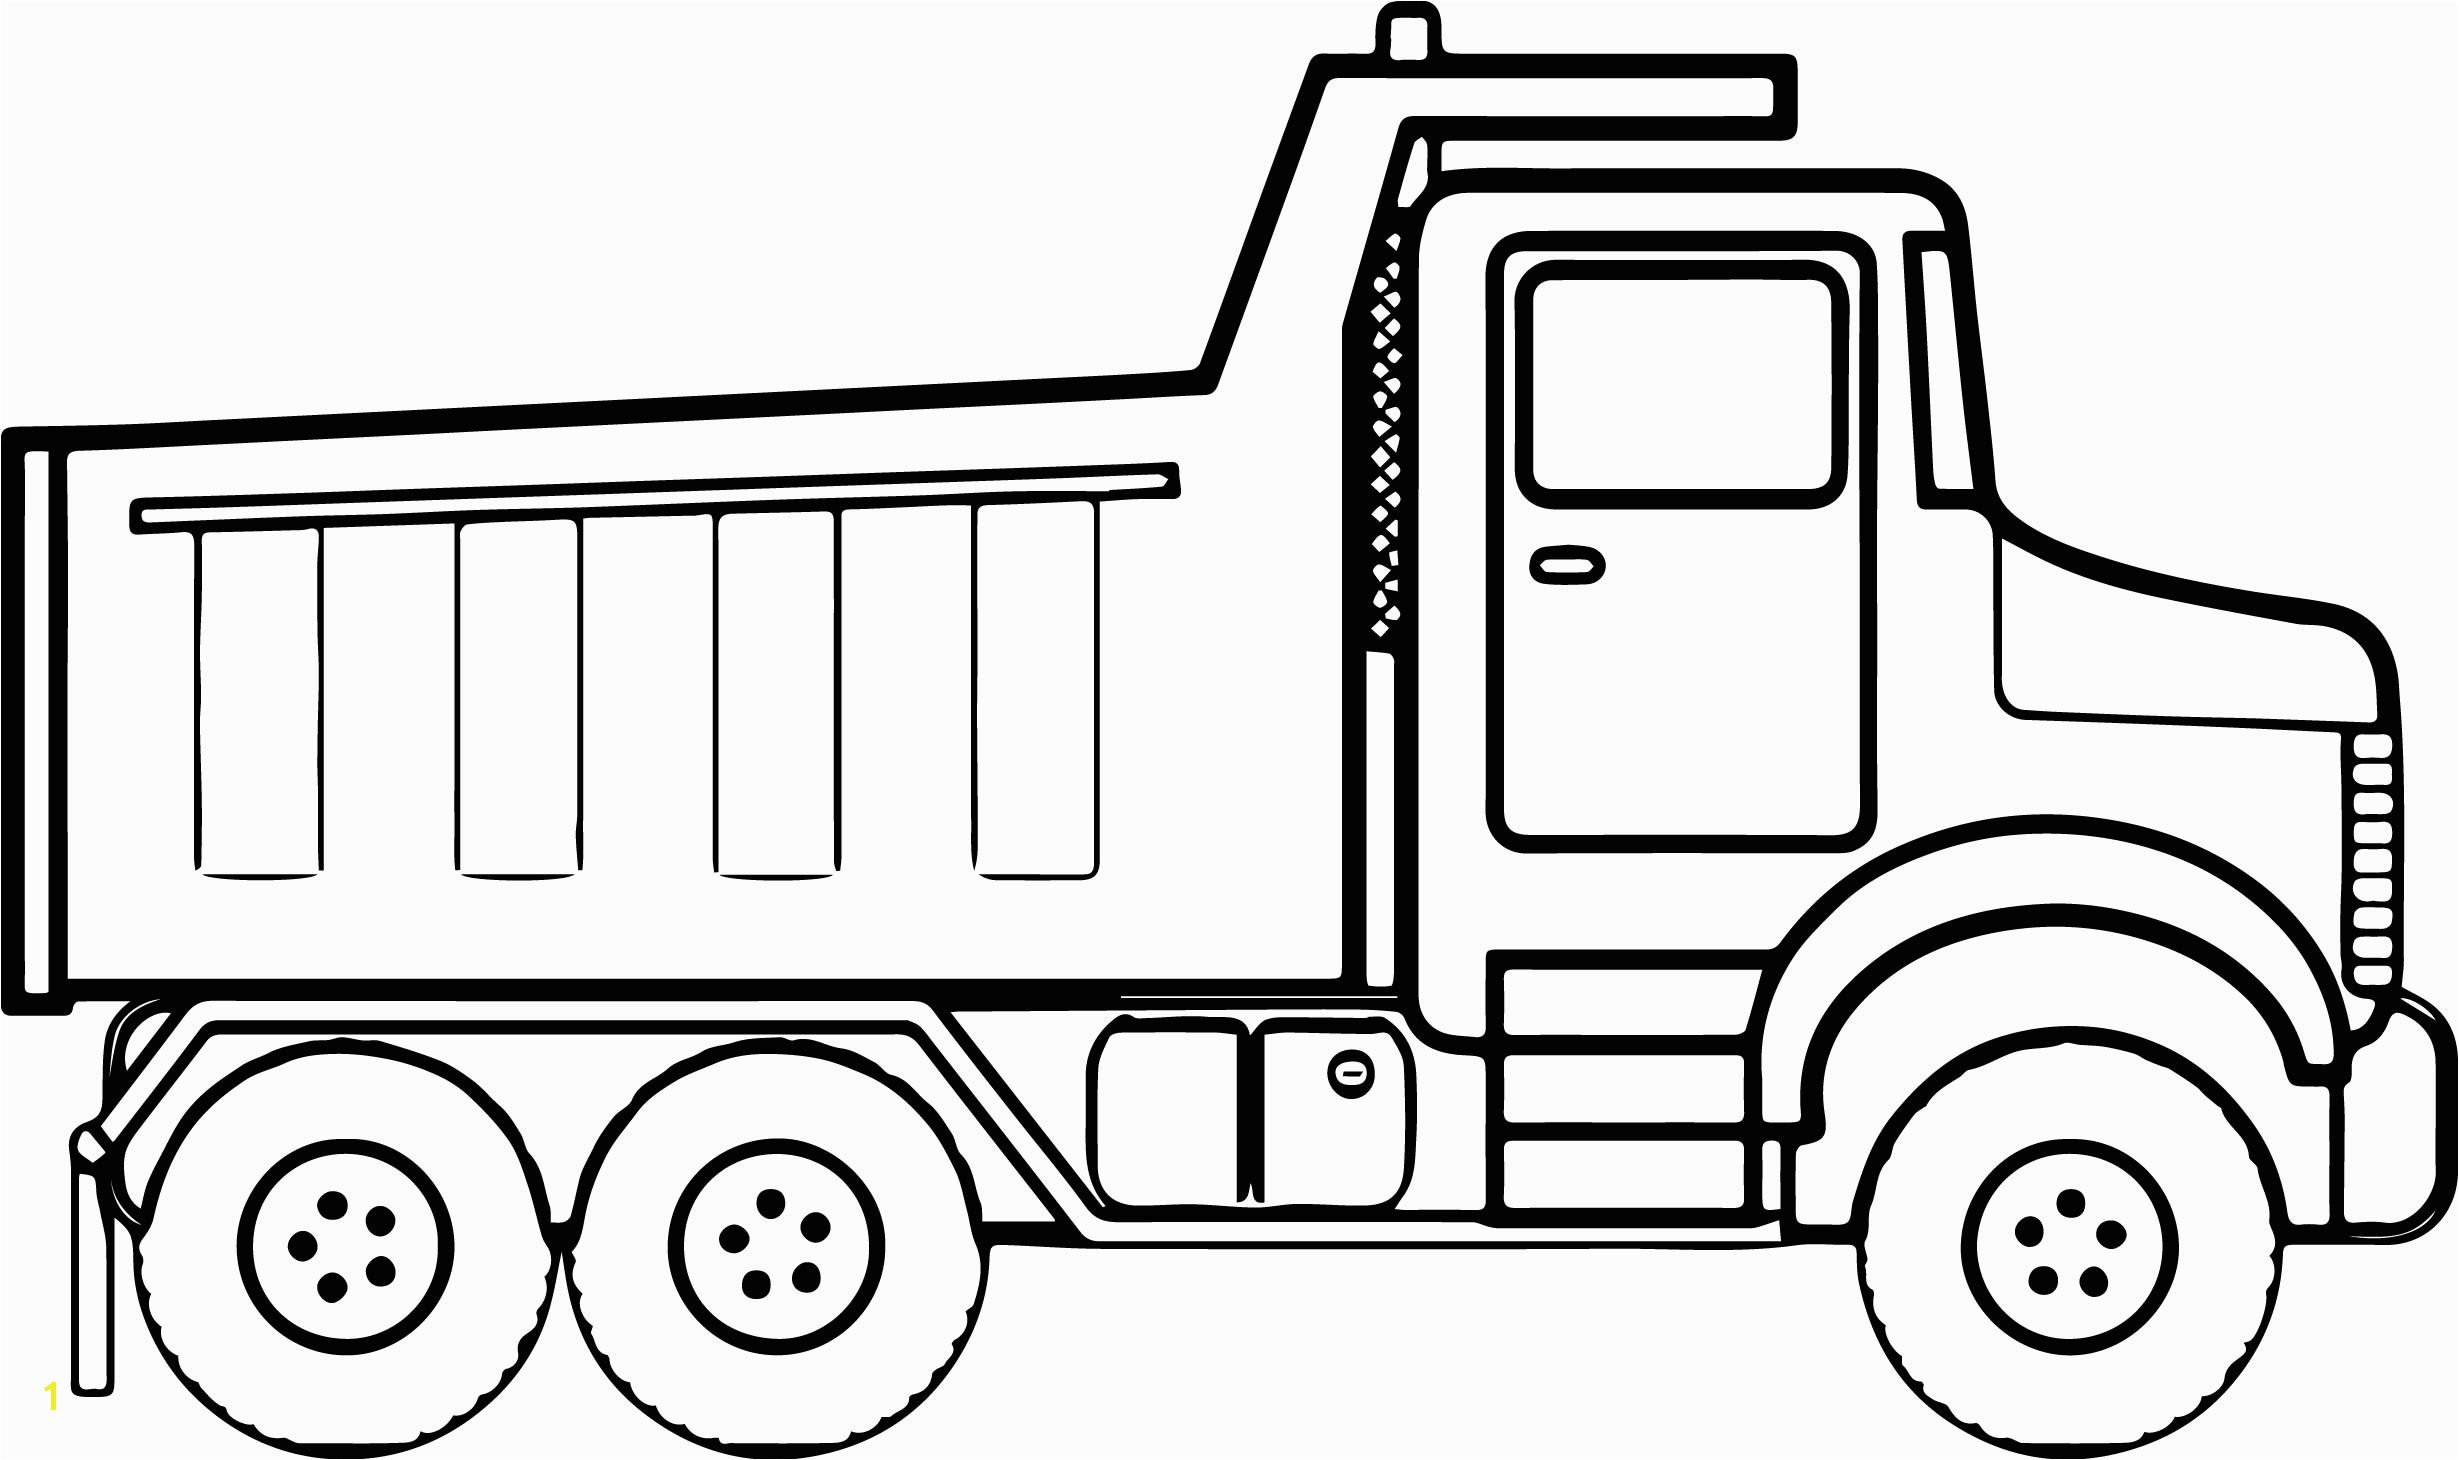 ford truck coloring pages Collection-Construction Coloring Pages Awesome ford F150 Coloring Page Construction Coloring Pages Awesome ford F150 Coloring 11-s